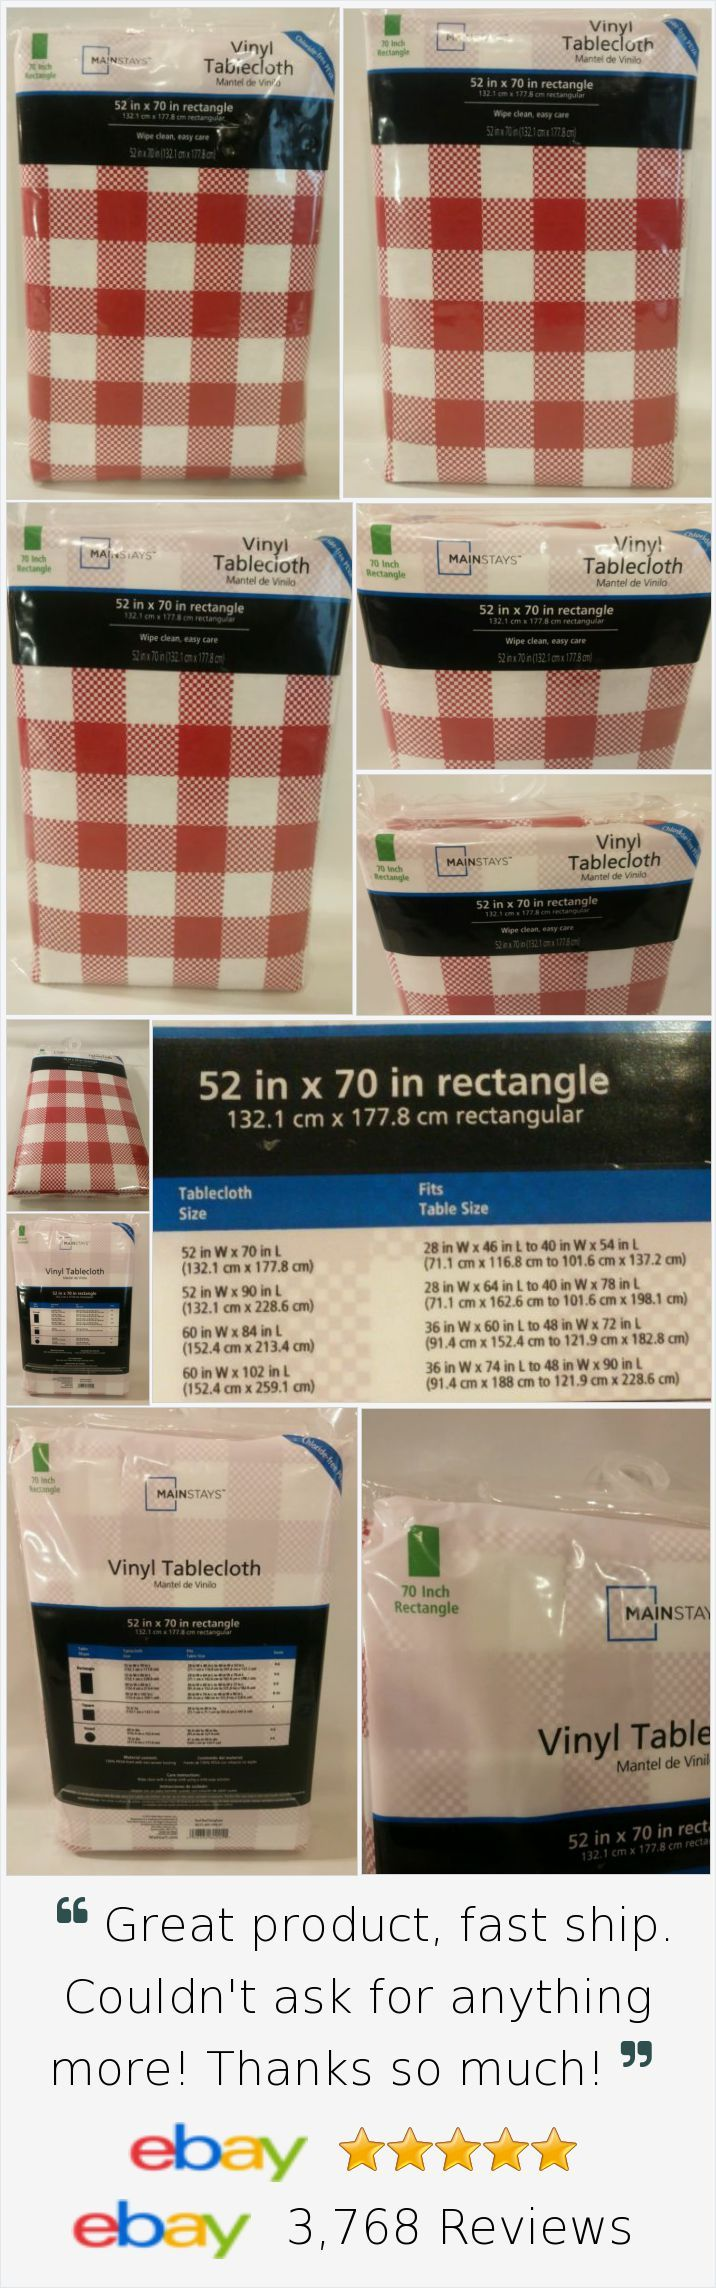 Tablecloth Red White Checkered 52 X 70 Rectangle Picnic BBQ Party Vinyl New